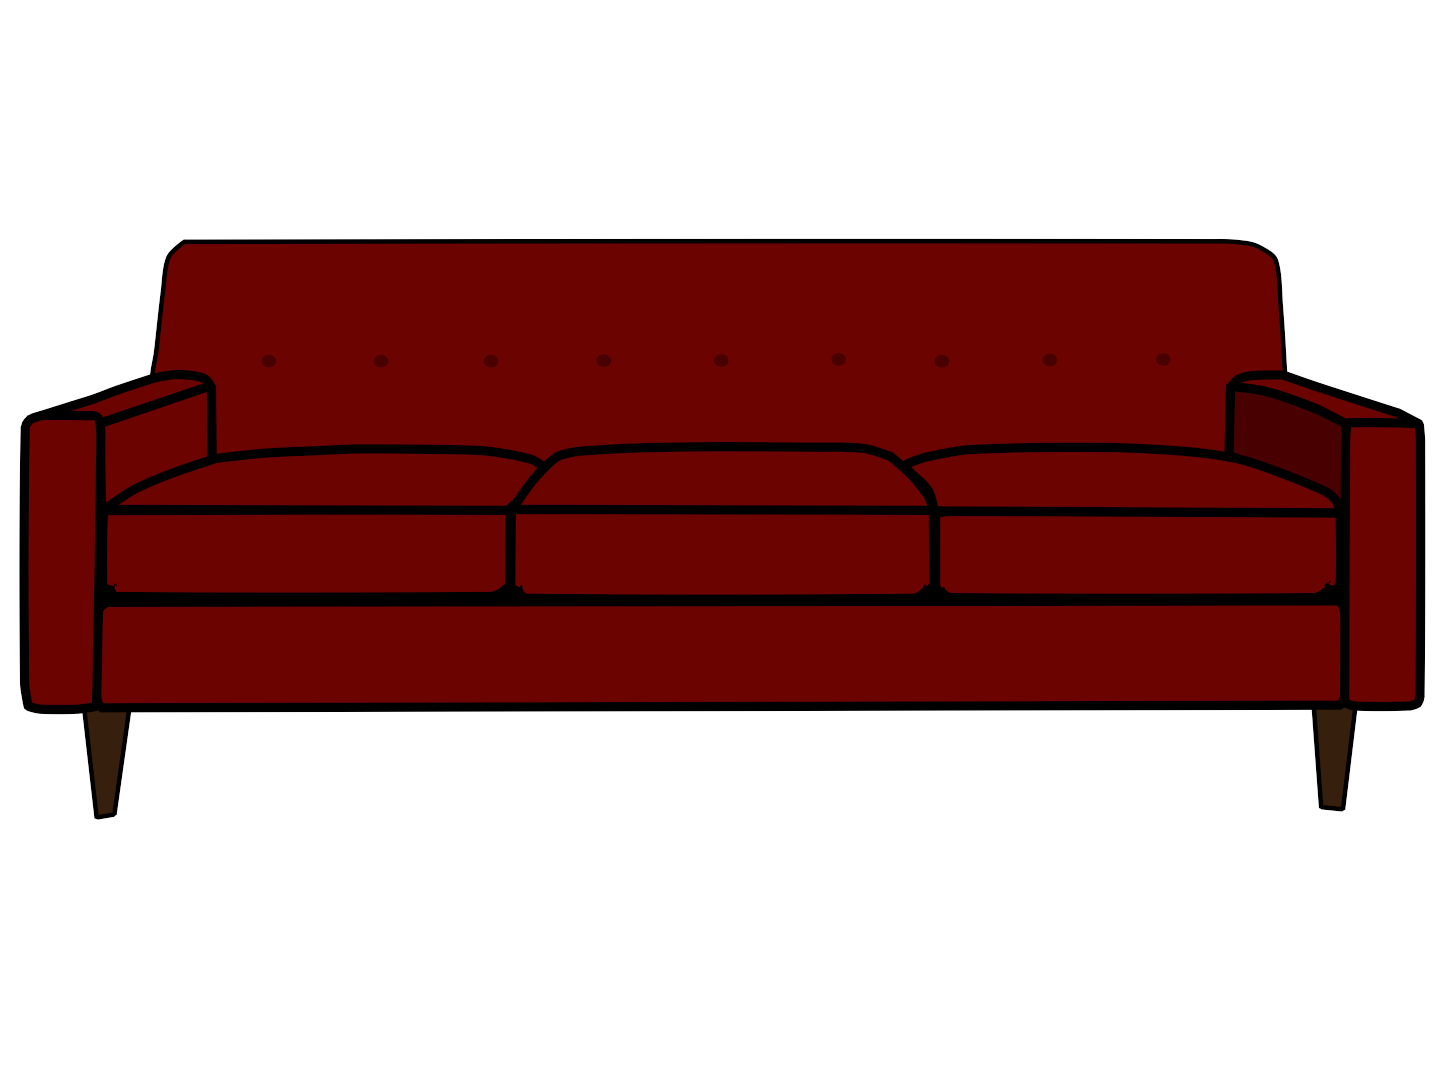 transparent couch clear background